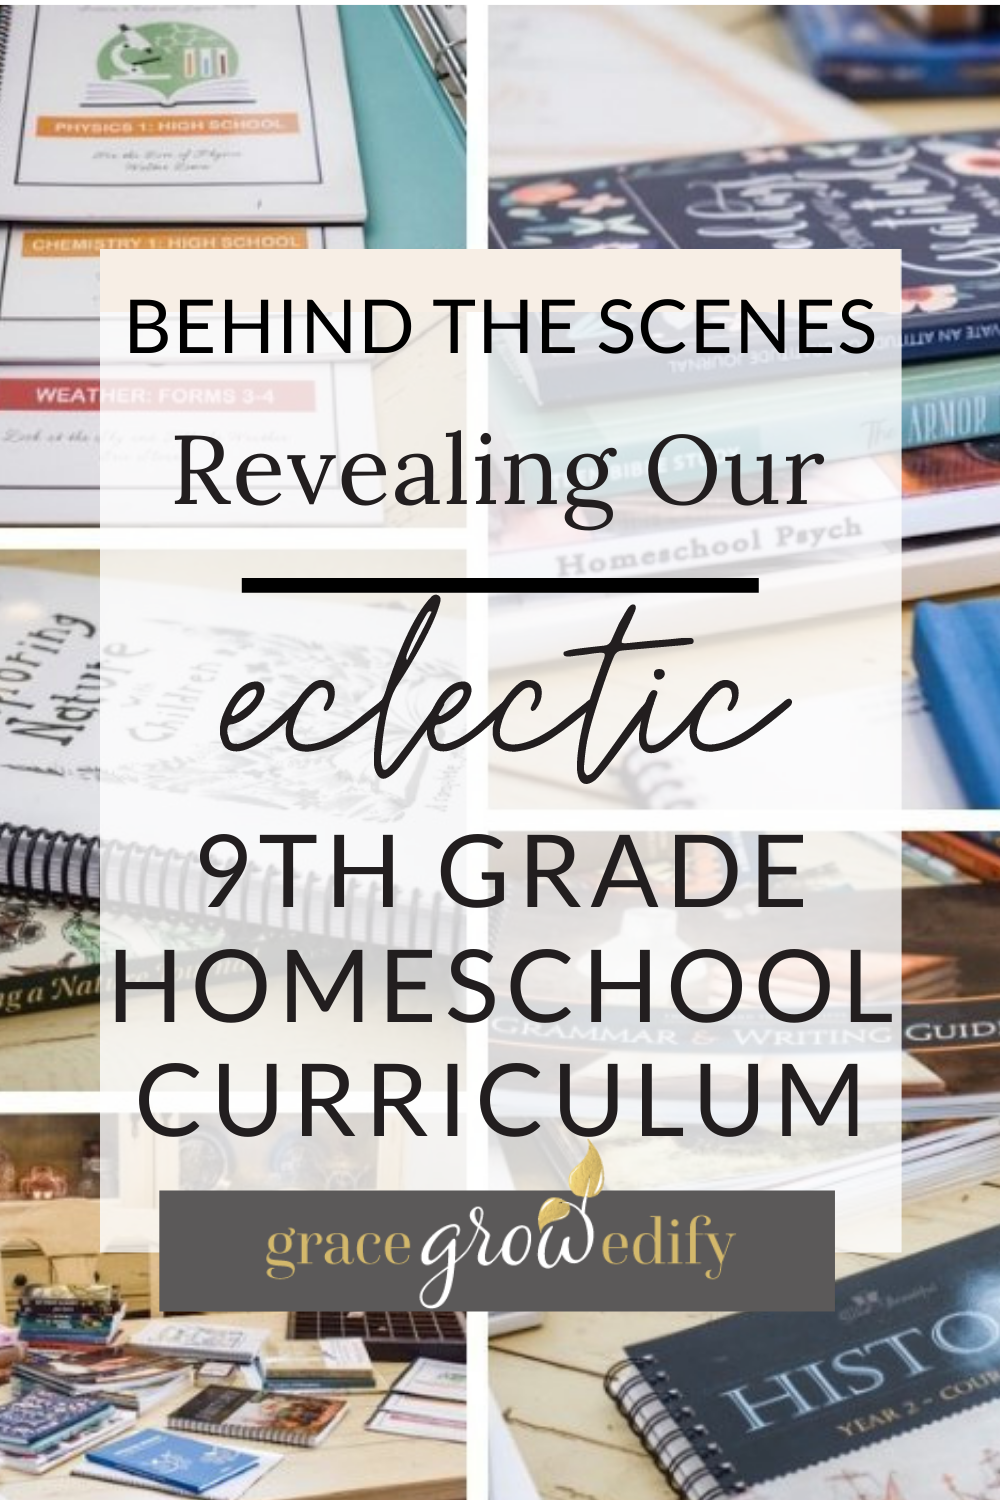 Check out our unique blend of homeschool curriculum for 9th grade! #homeschool #9thgrade #homeschoolcurriculum #highschool #homeschoolhighschool